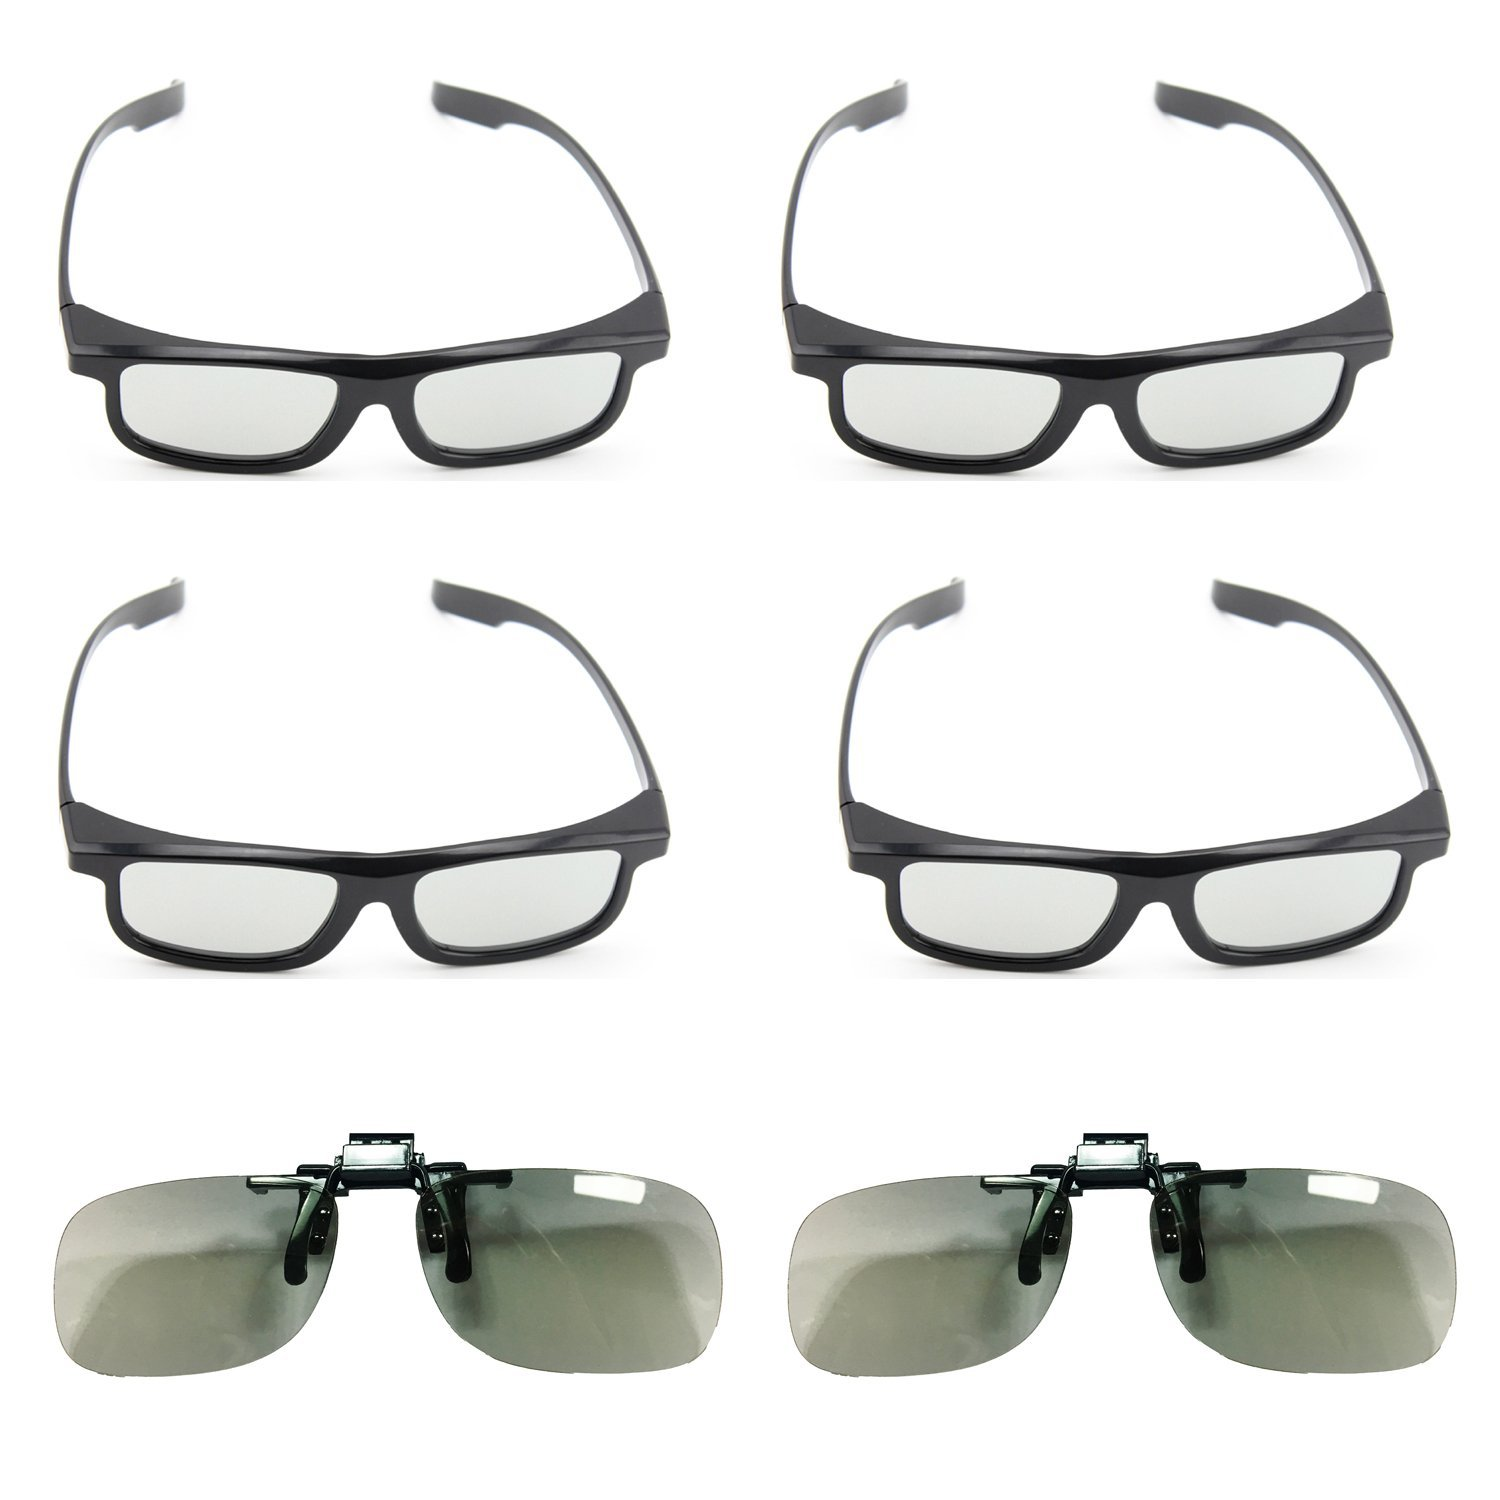 Goswot 6 Pairs of Passive Circular Polarized 3D Glasses for Real-D Theaters/ Passive 3D TVs